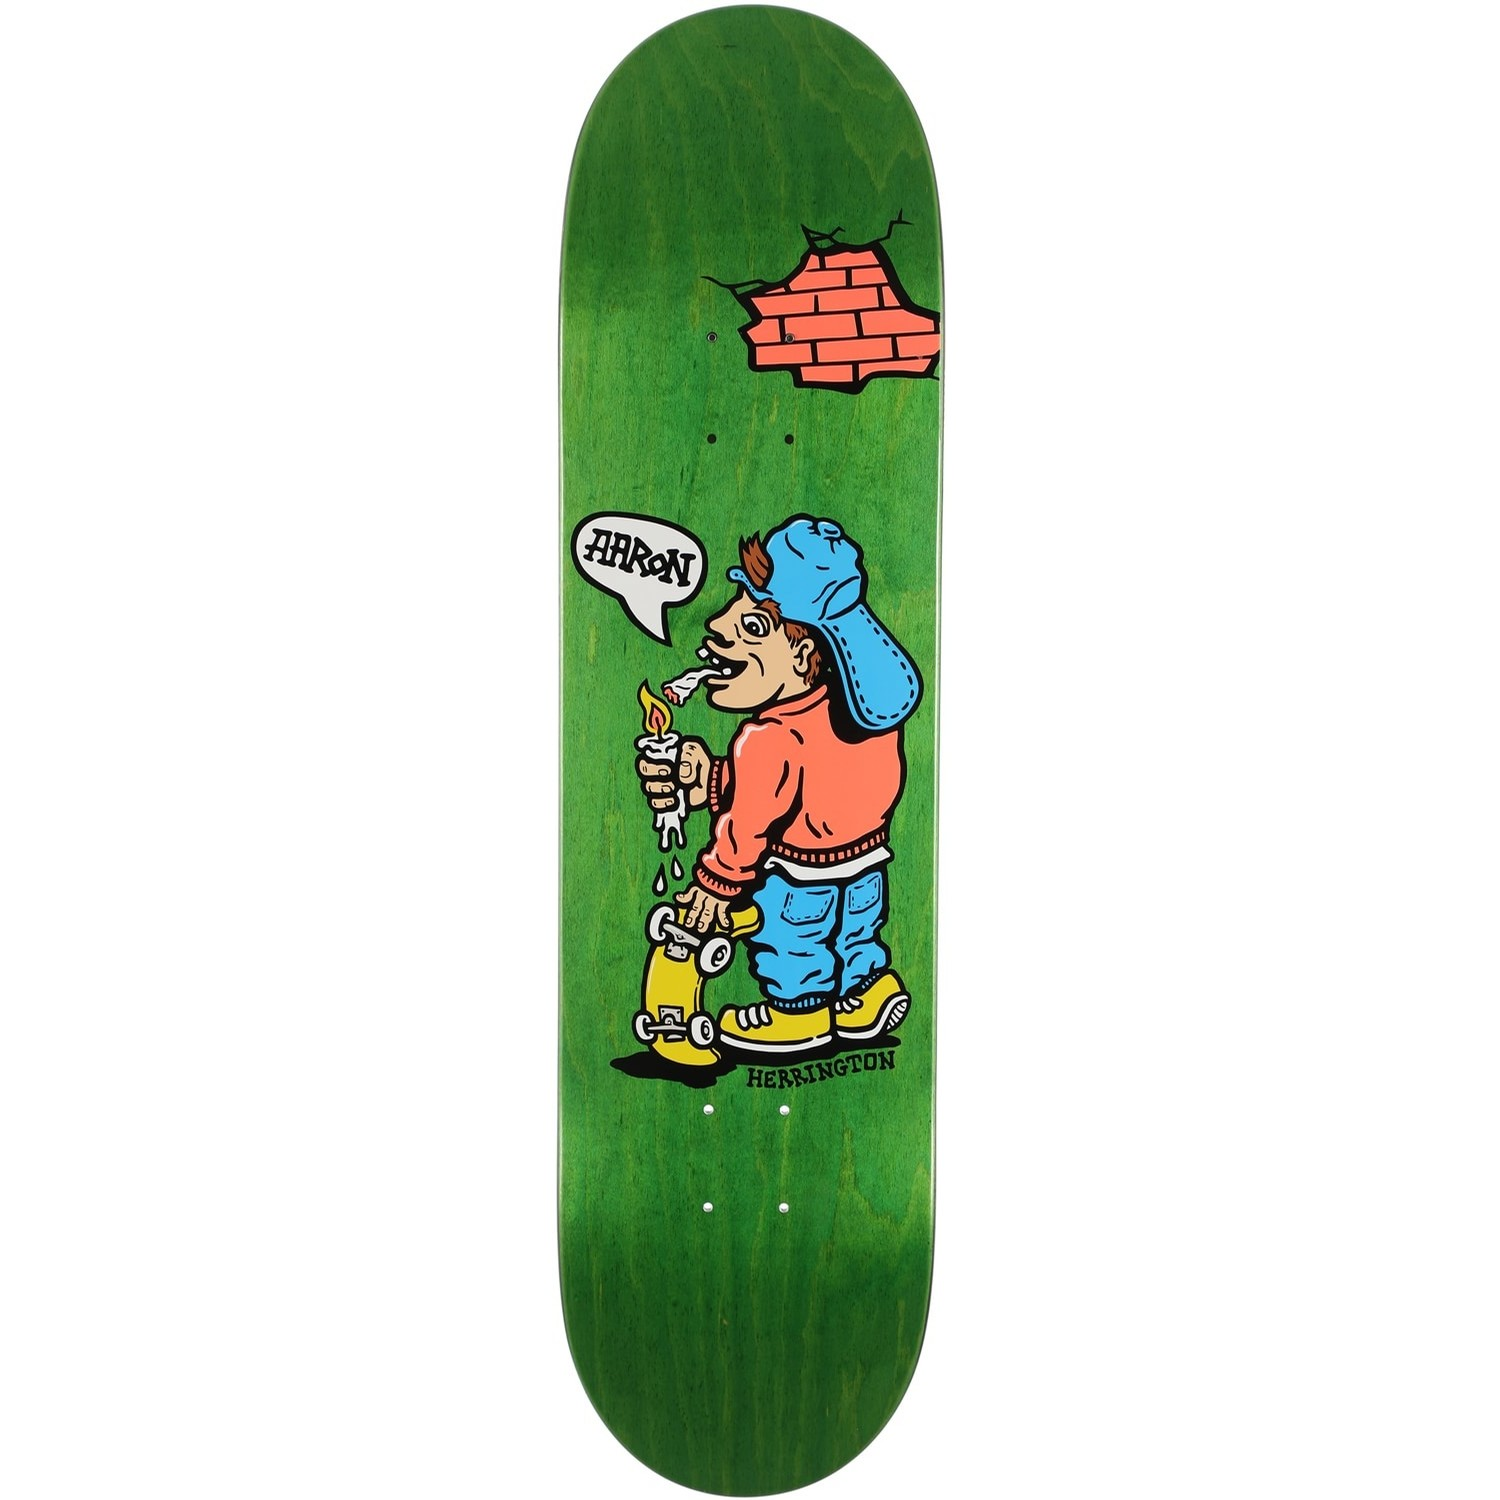 Herrington Cake J Deck (8.625)